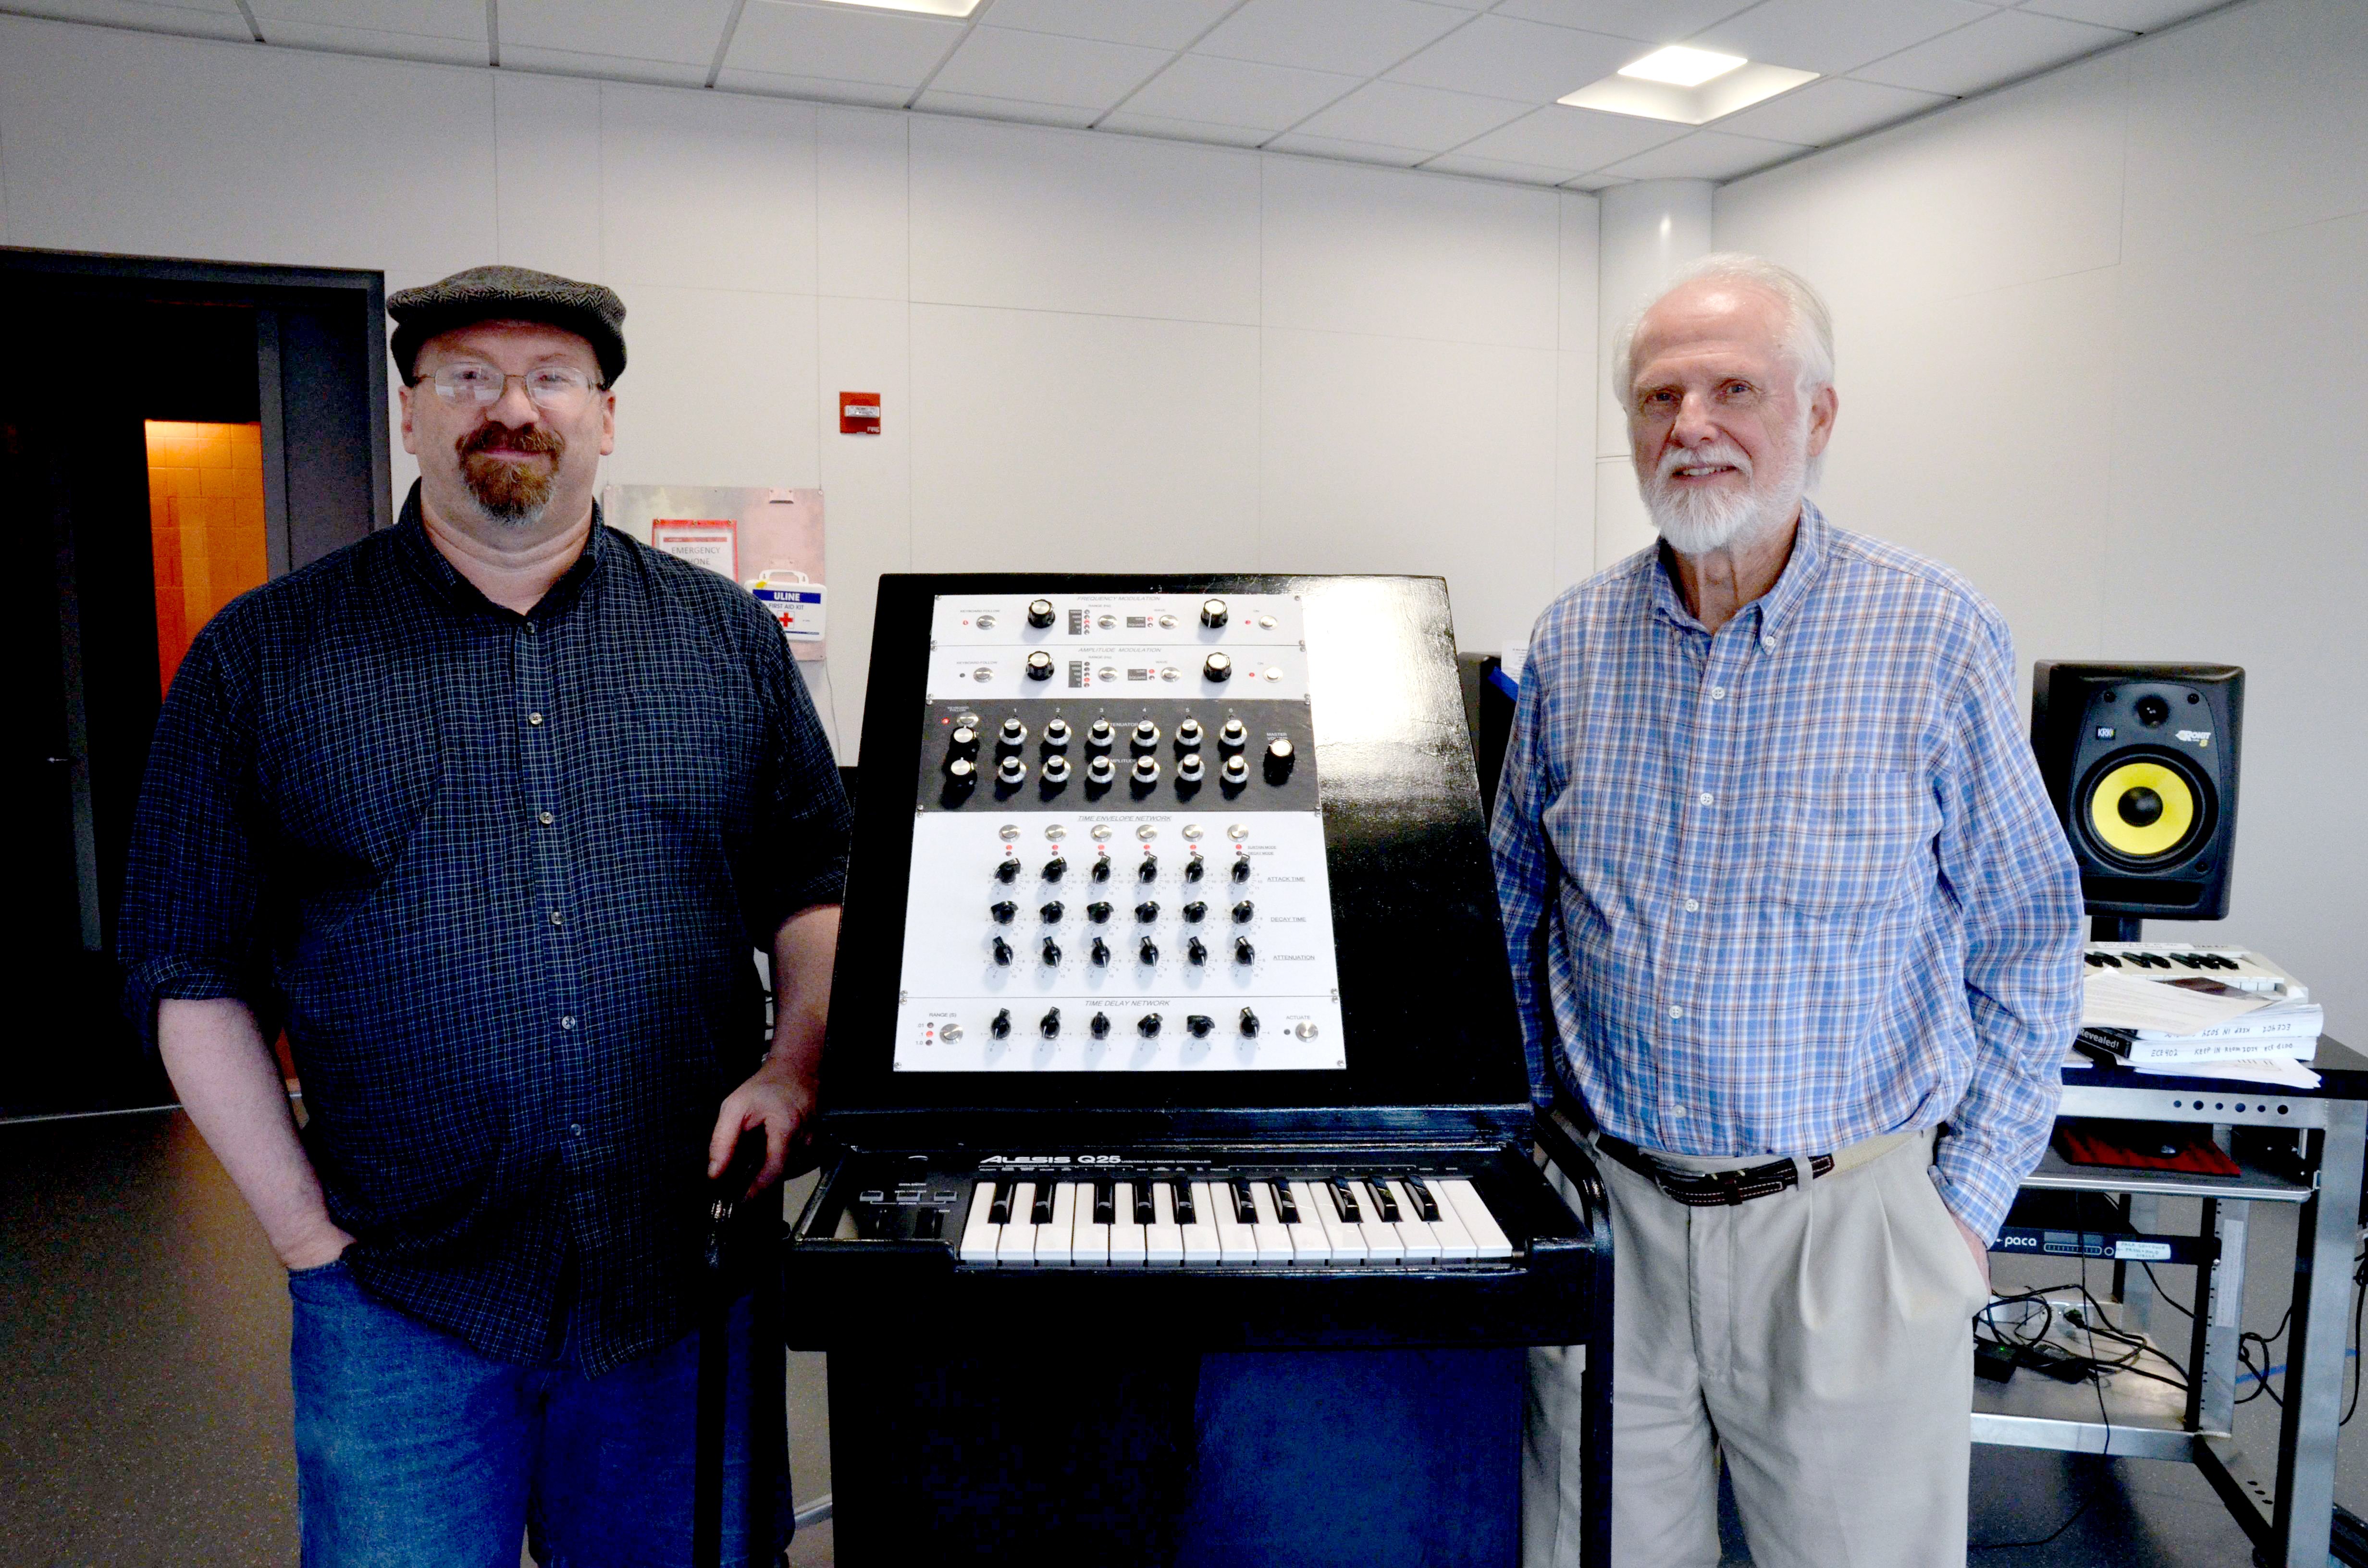 Smart (left) and Beauchamp (right) with the recreated instrument in ECE ILLINOIS' Electronic Music Lab.